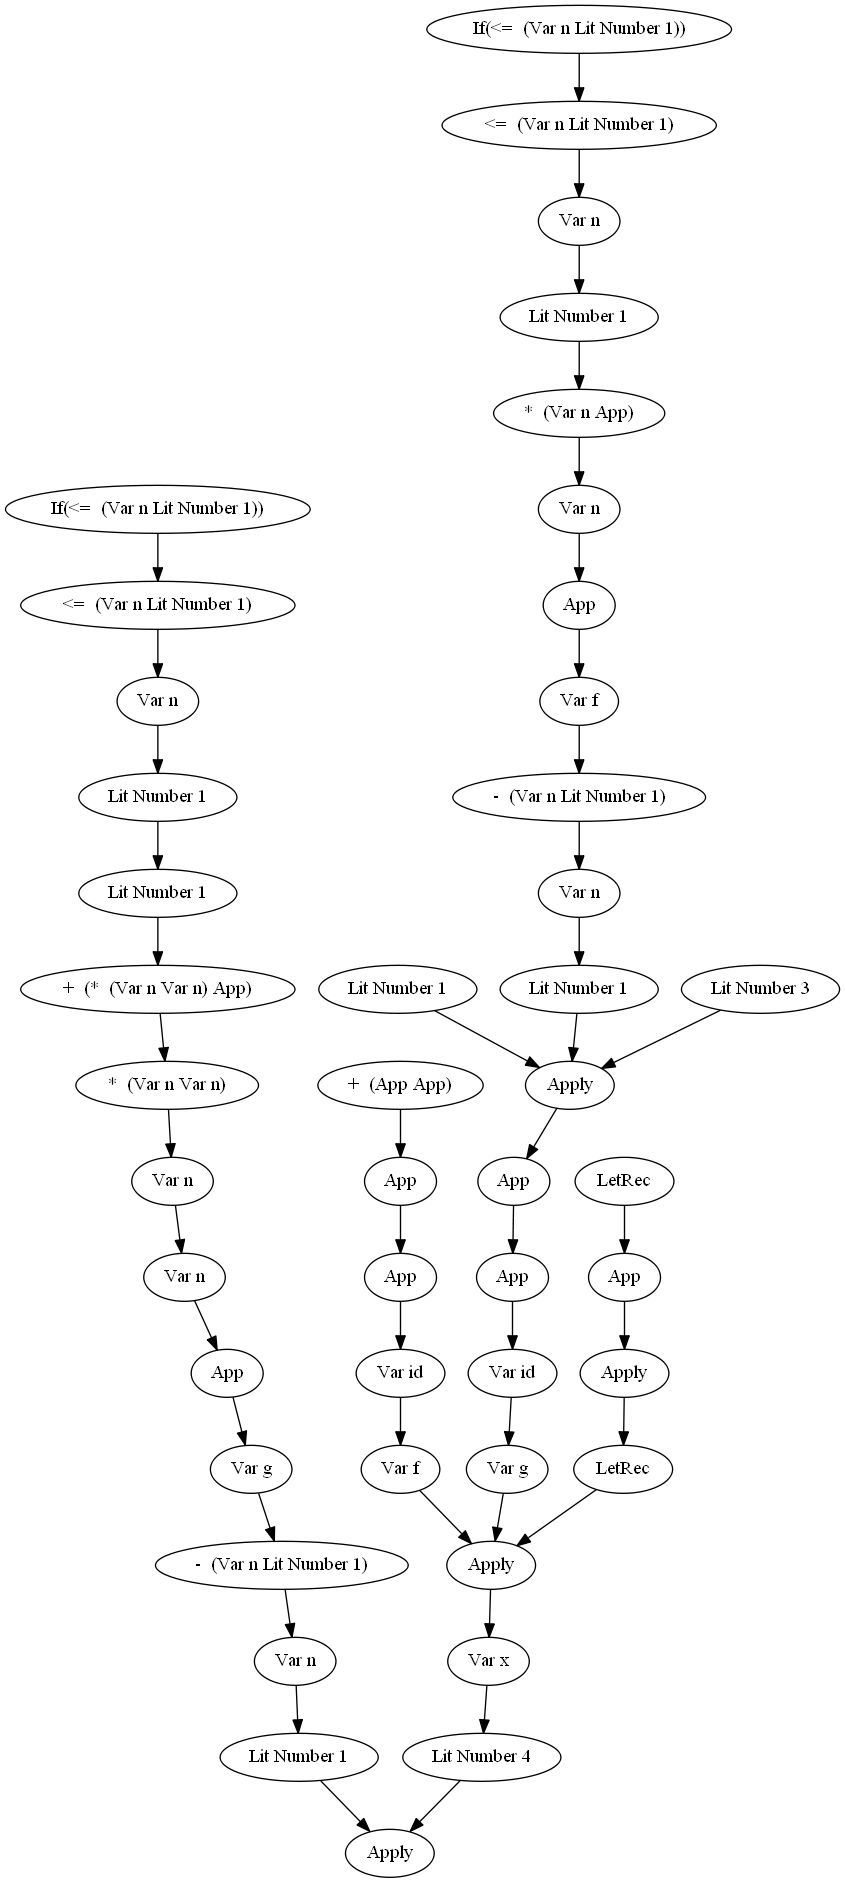 scheme/graph_files/scala-am/gcipd.png